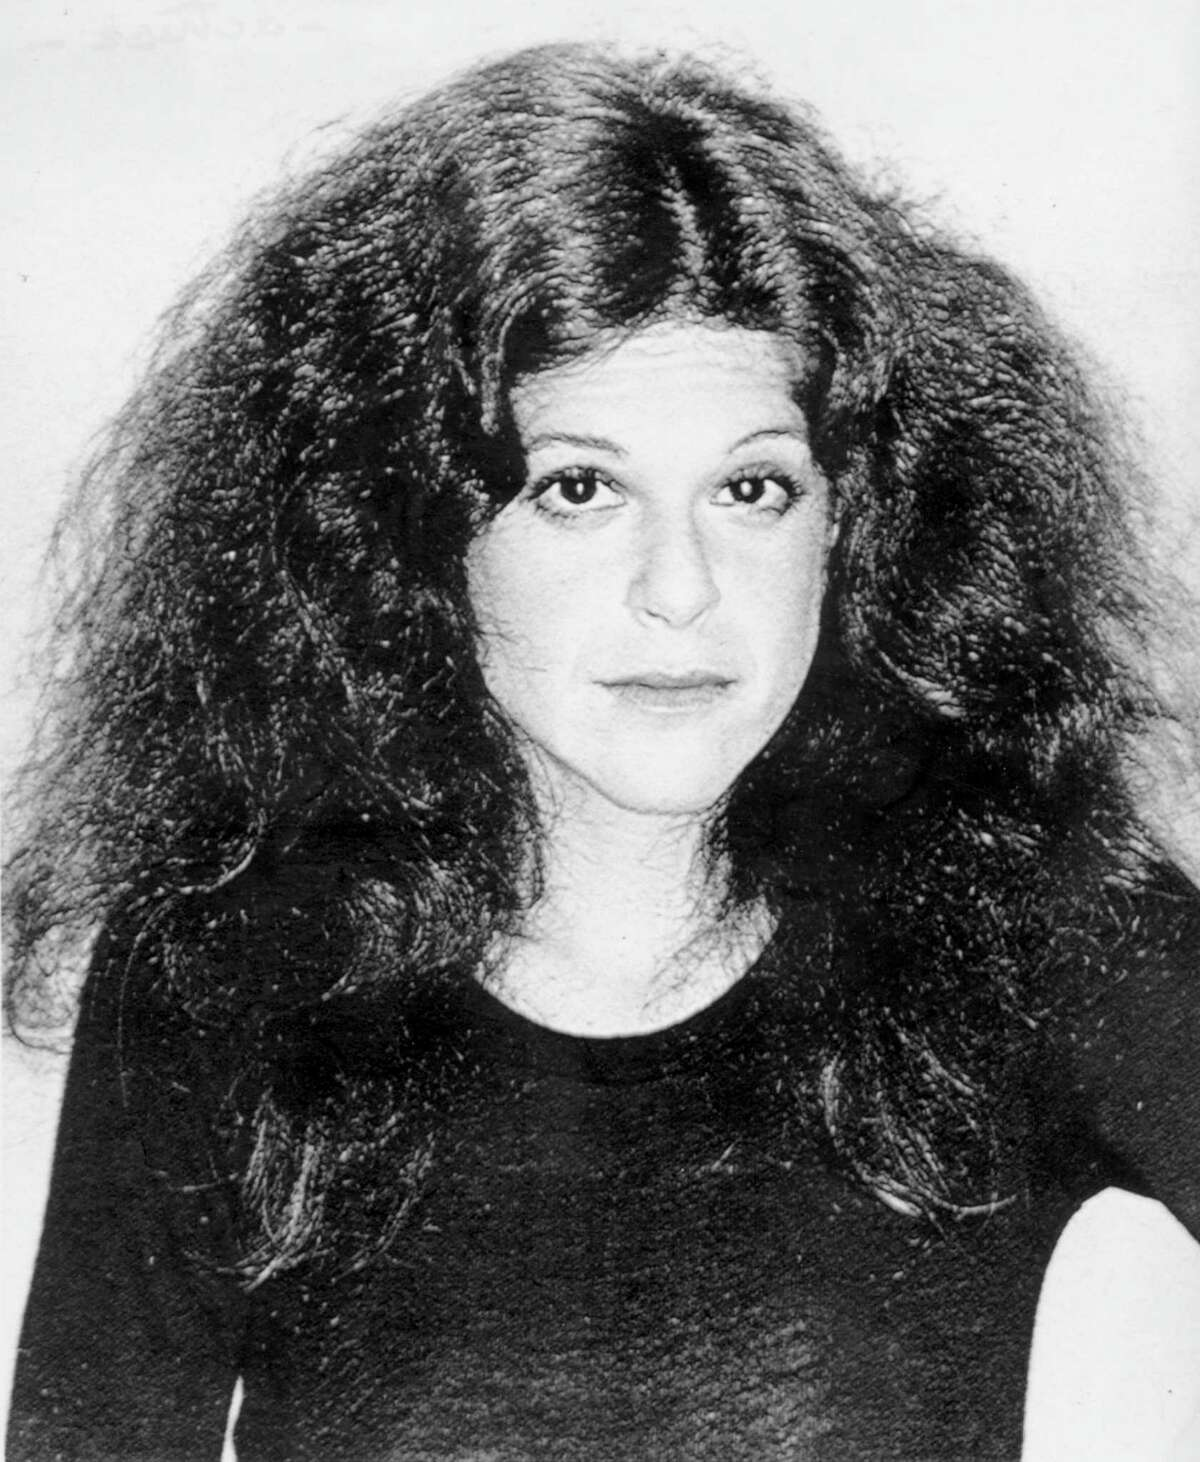 """Original """"Saturday Night Live"""" cast member Gilda Radner, who died in 1989 at age 42, is the subject of the documentary """"Love, Gilda."""""""